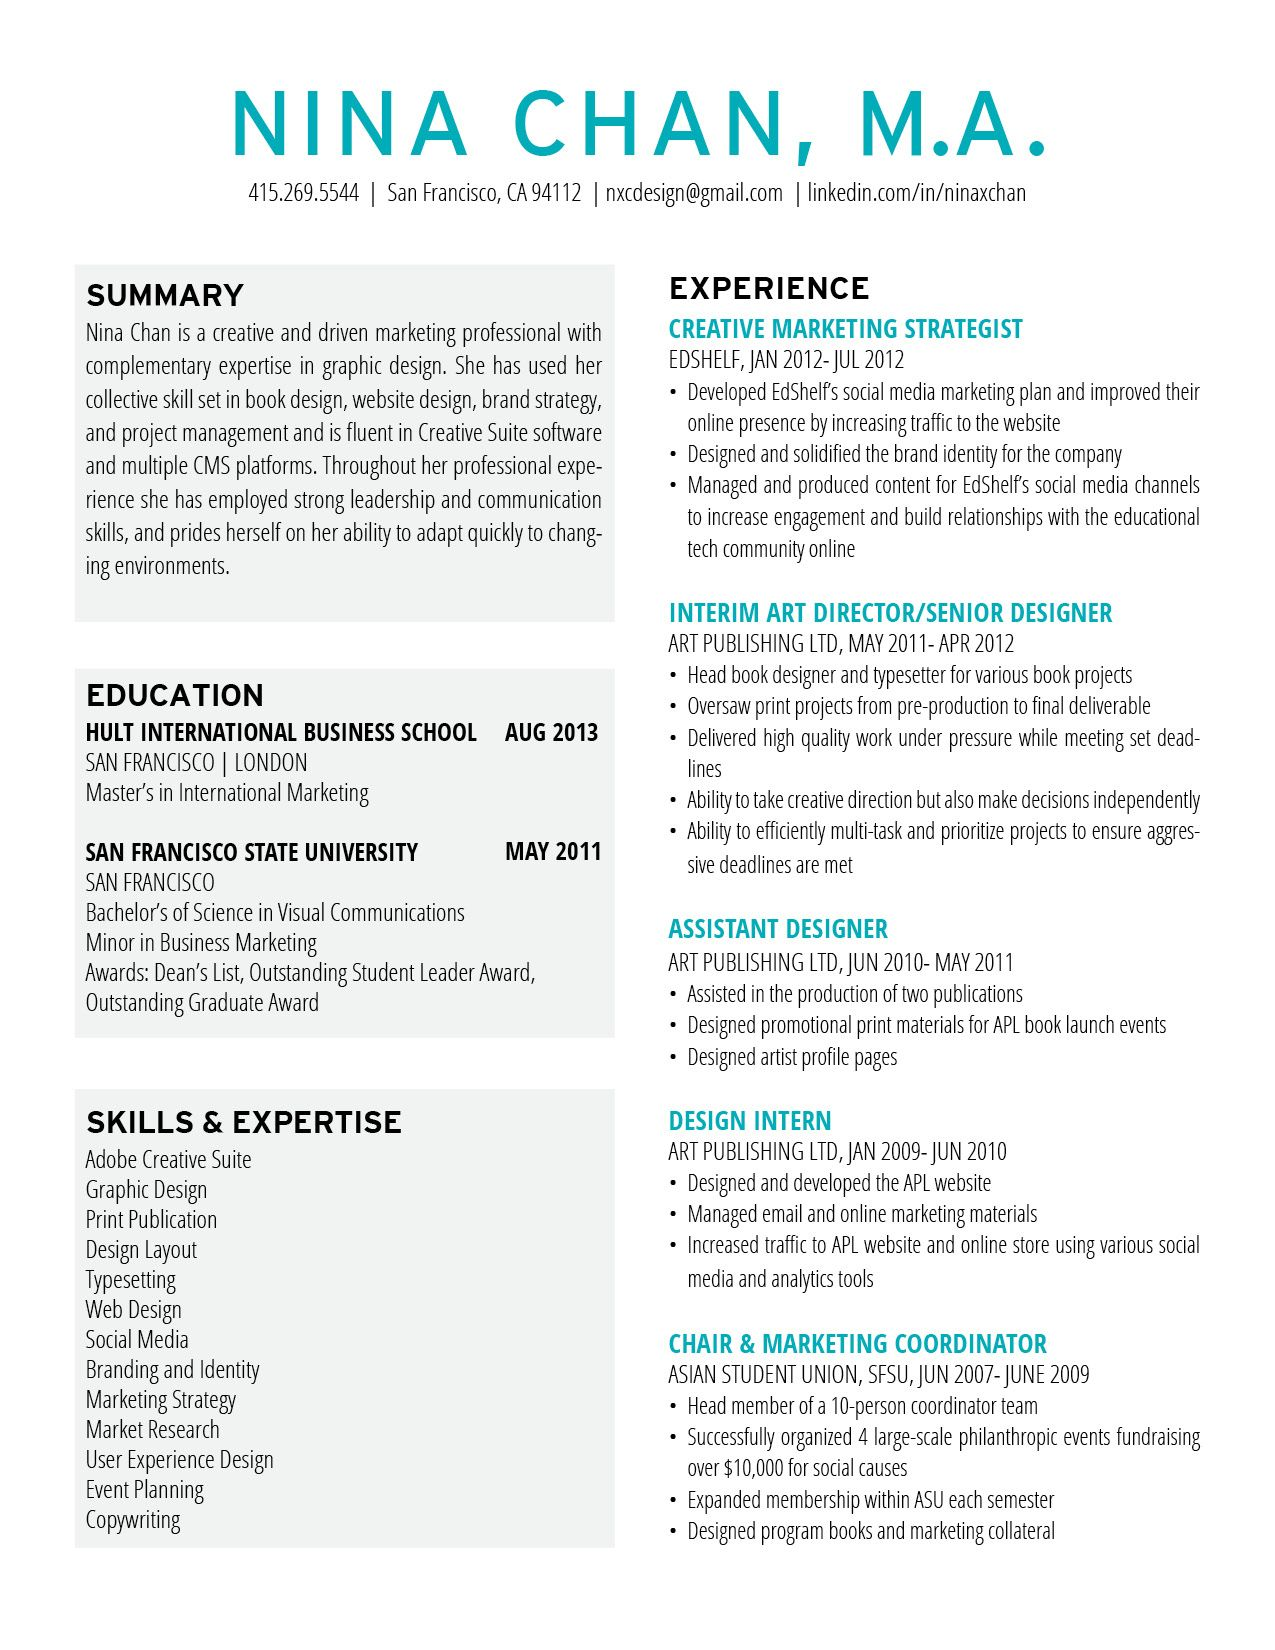 Ninachan Resume Design Marketing Resume Resumedesign Layout